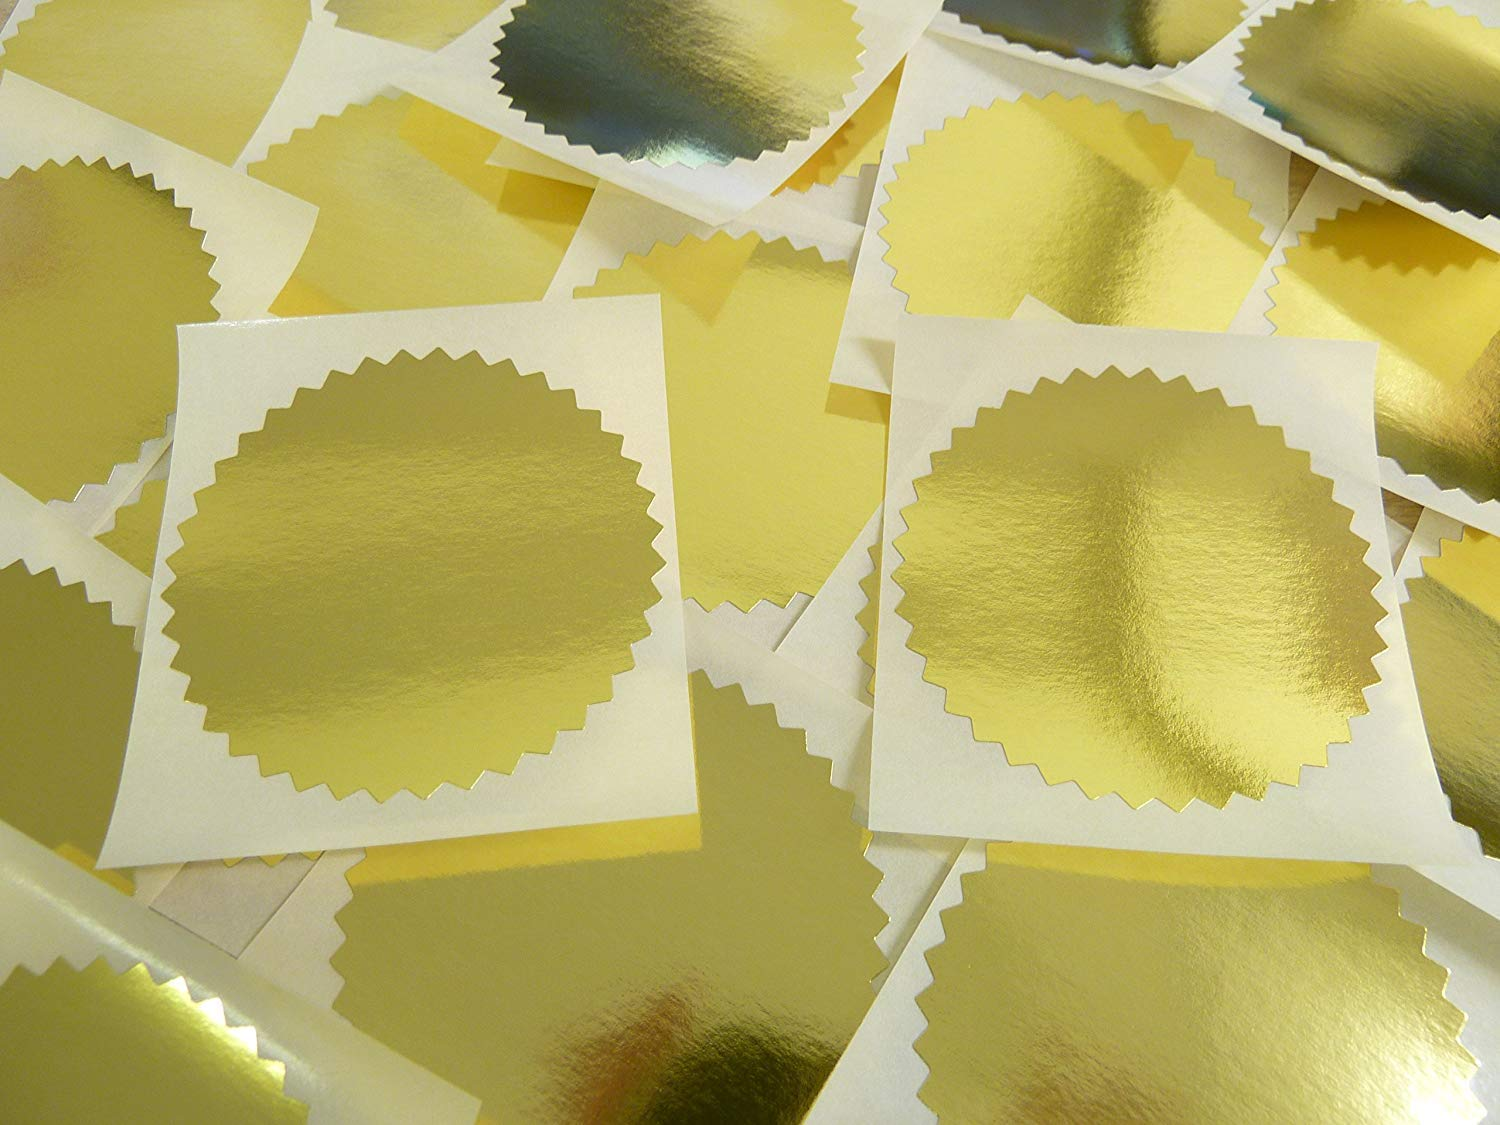 Shiny Gold Stickers for Embossing Awards /& Rewards Minilabel 50mm Serrated Edge Certificate Wafer Company Seal Labels